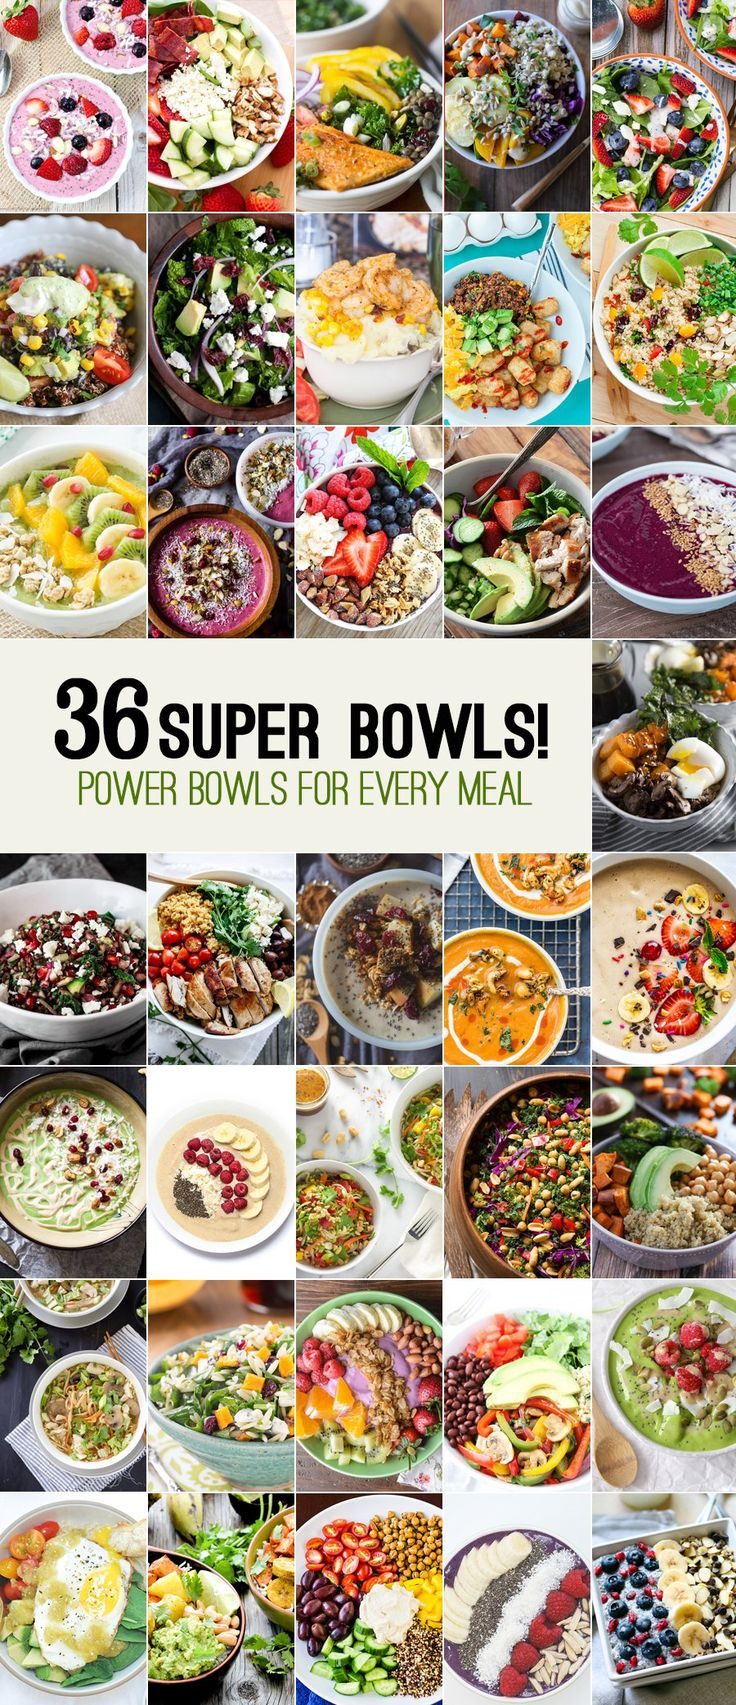 10 Delicious Power Bowls for Every Meal